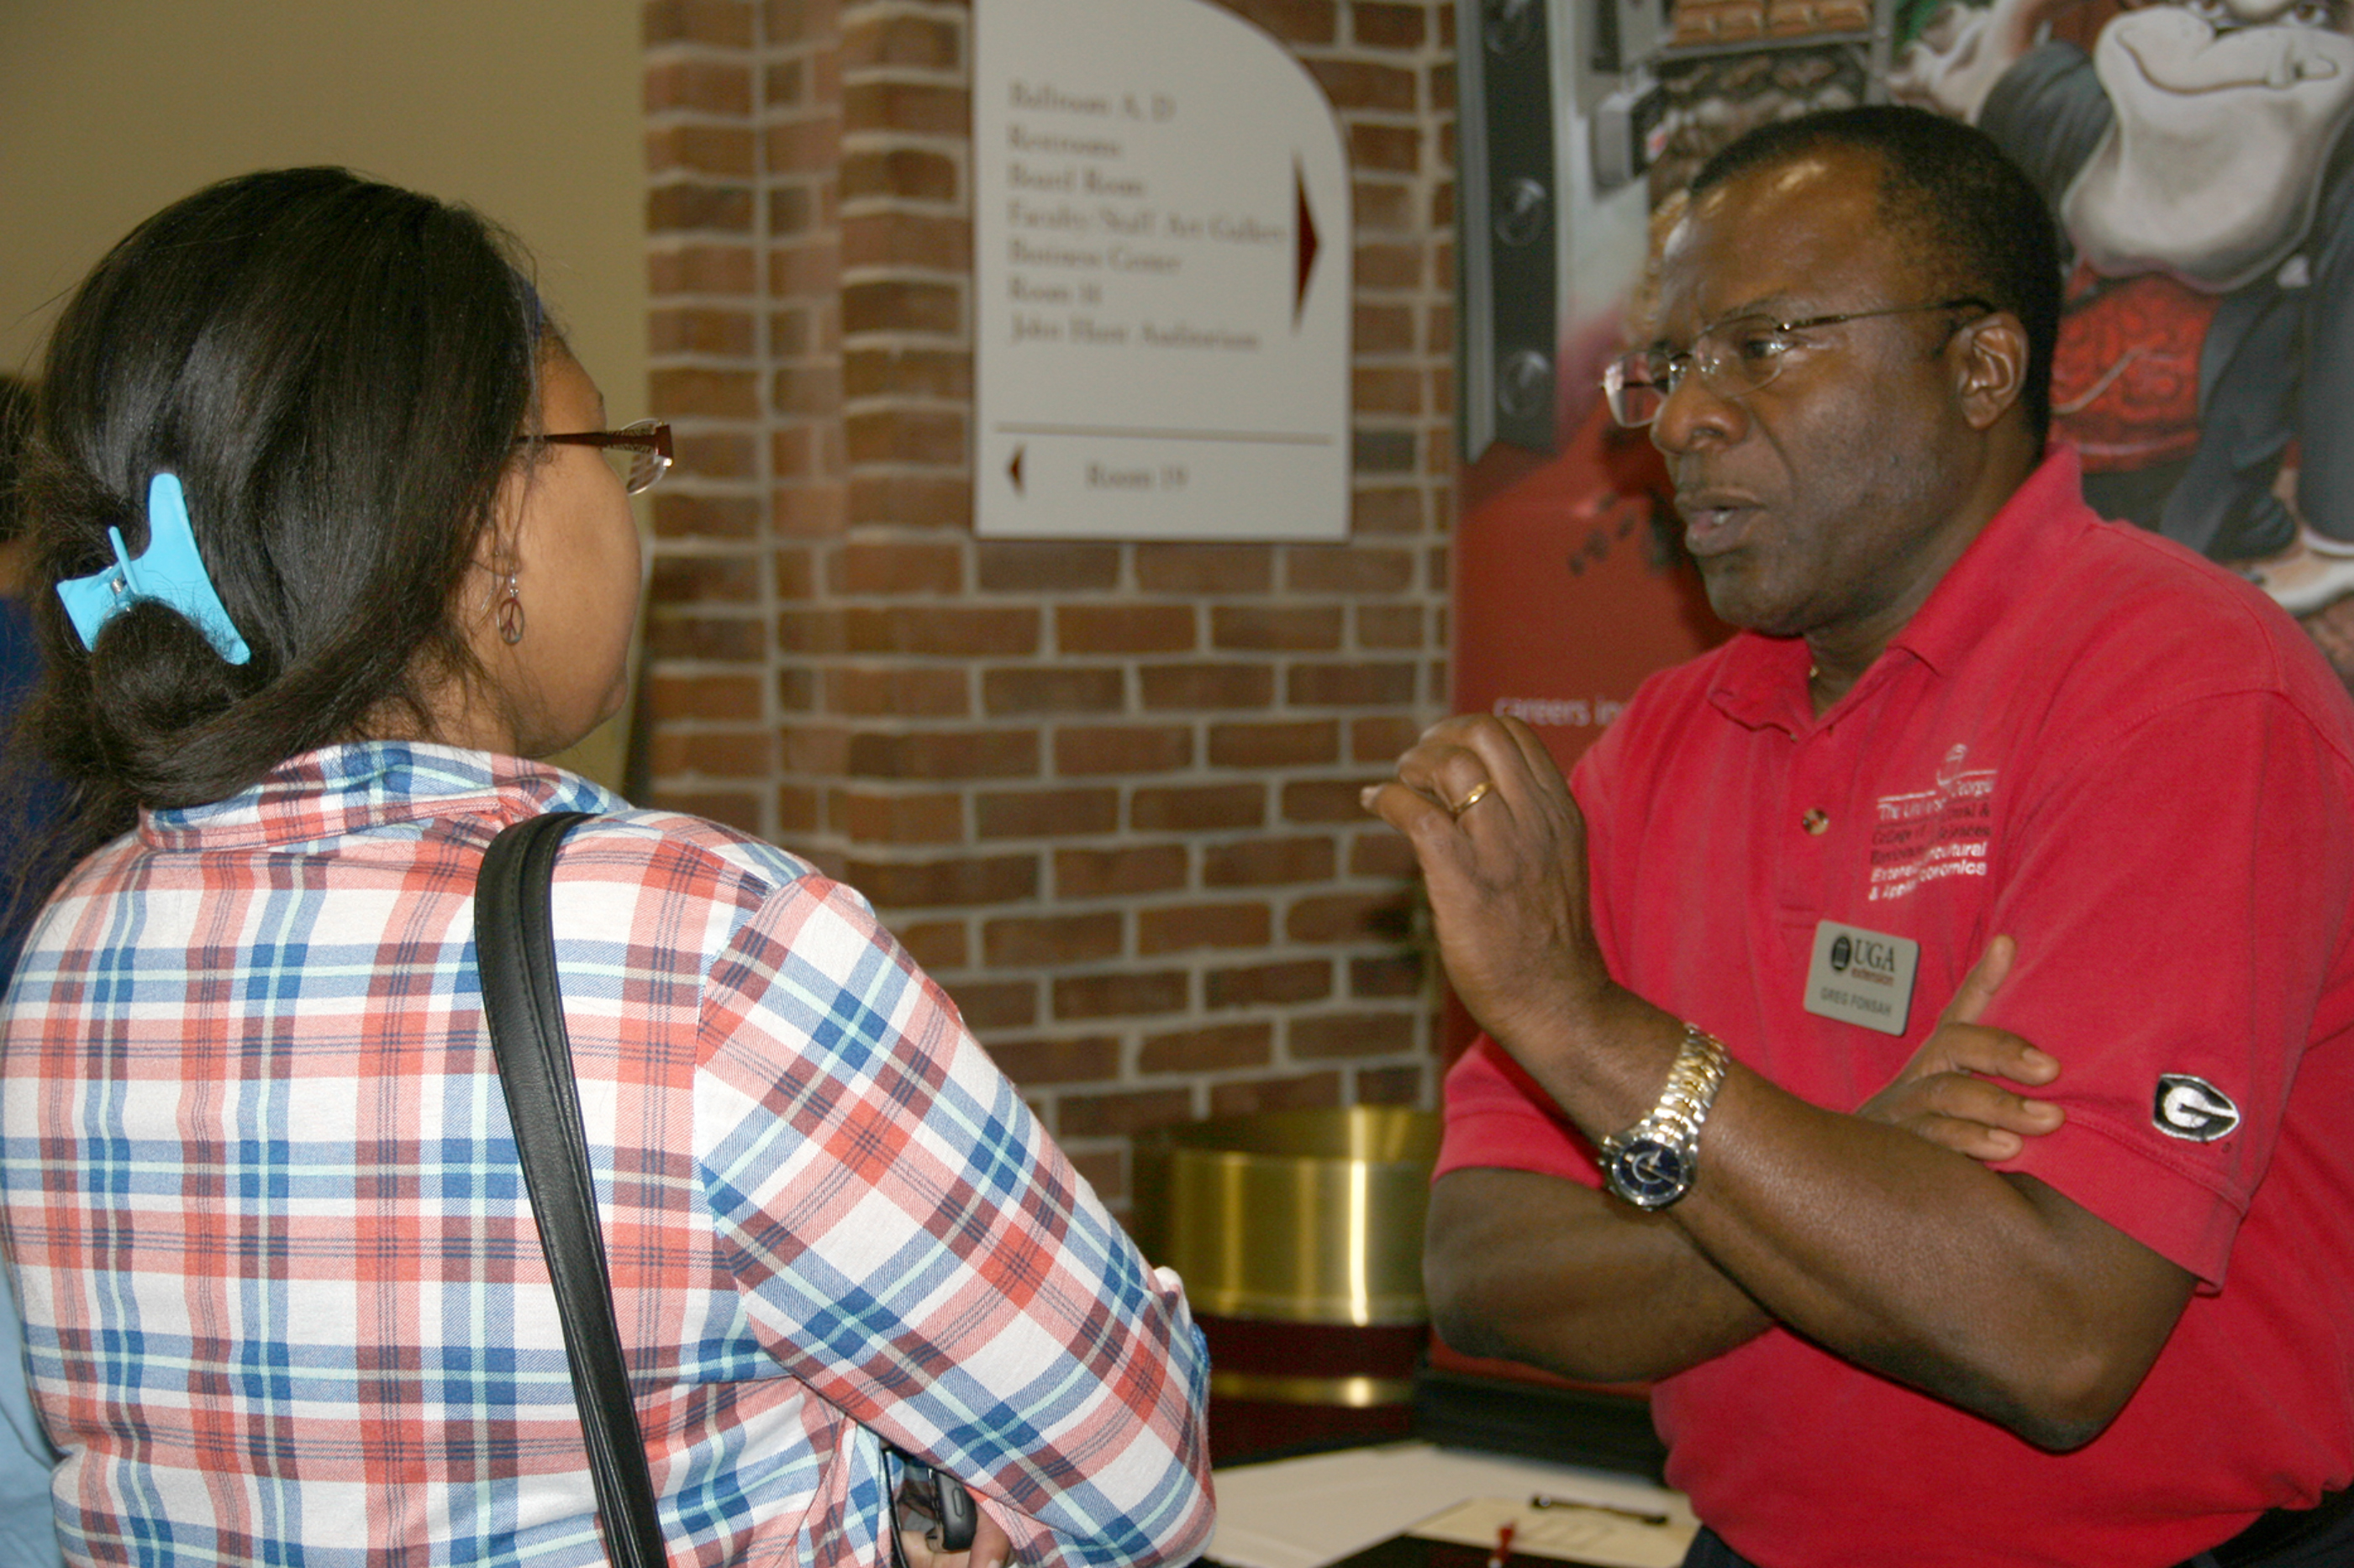 UGA-Tifton professor Greg Fonsah talks to a student during the Southwest ShowCAES event in 2016.